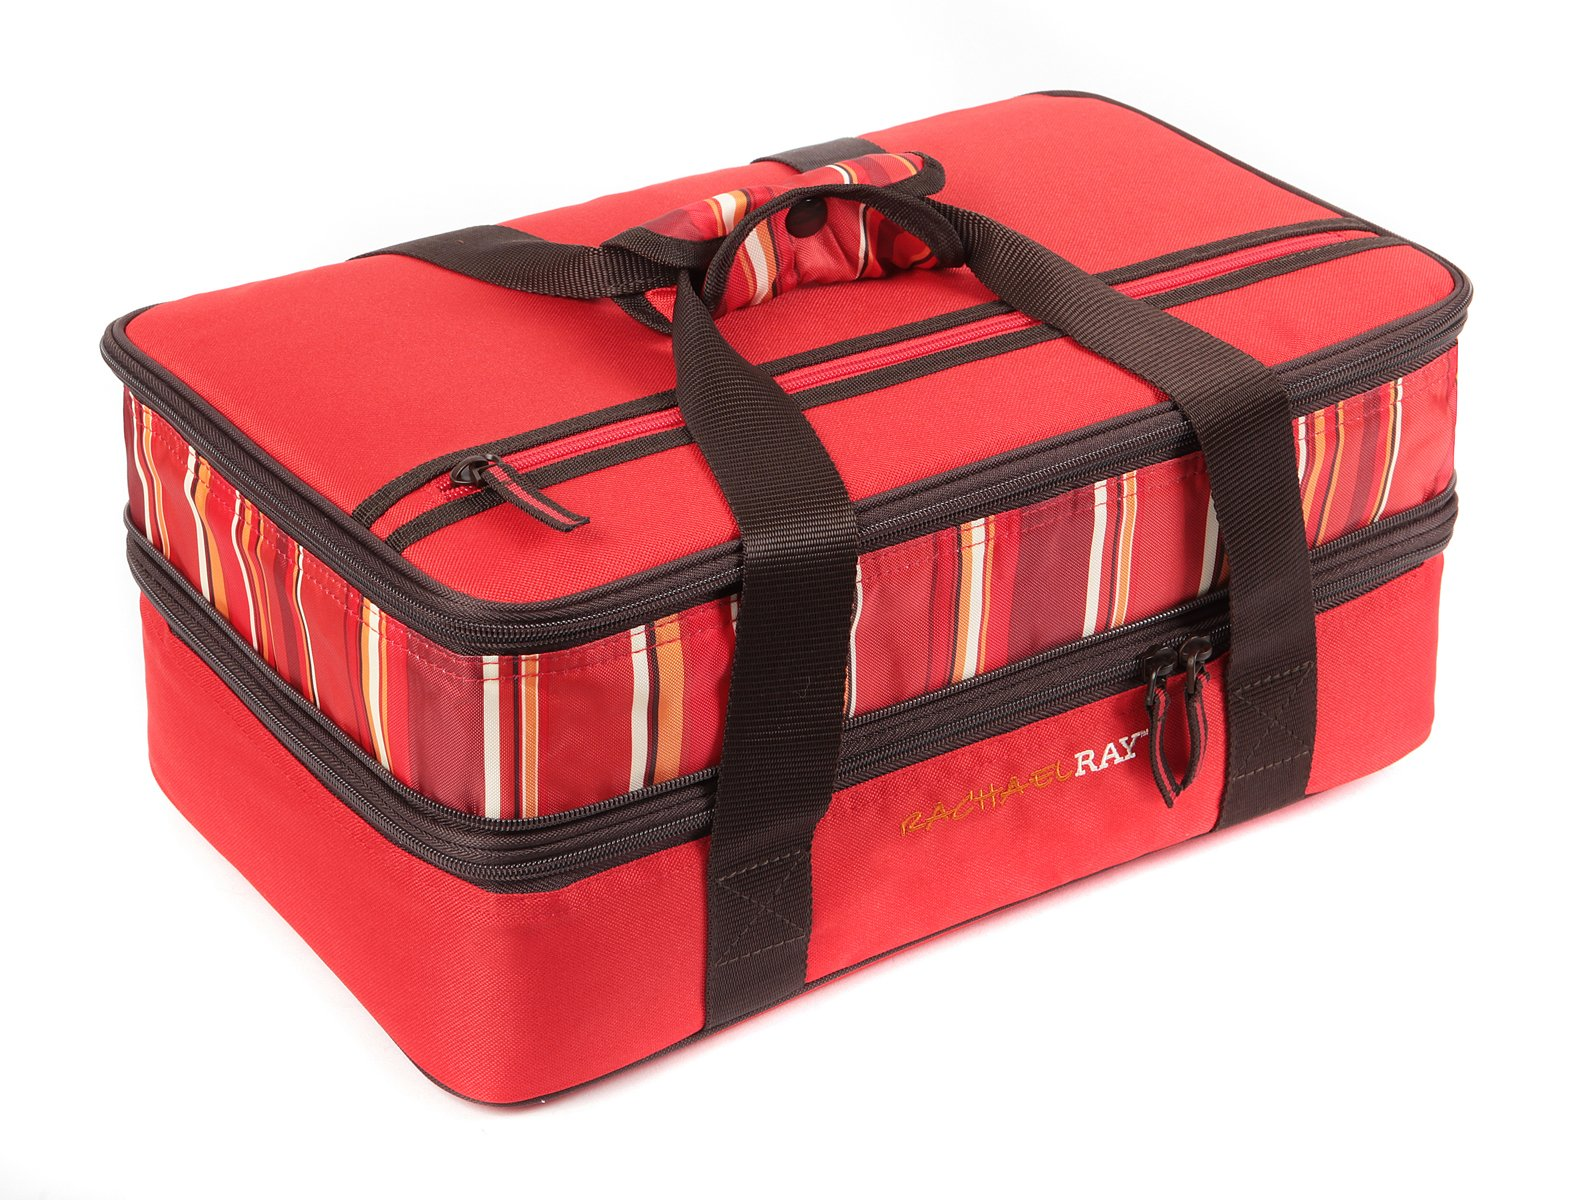 Rachael Ray Expandable Lasagna Lugger, Double Casserole Carrier for Potluck Parties, Picnics, Tailgates - Fits two 9''x13'' Casserole Dishes, Red